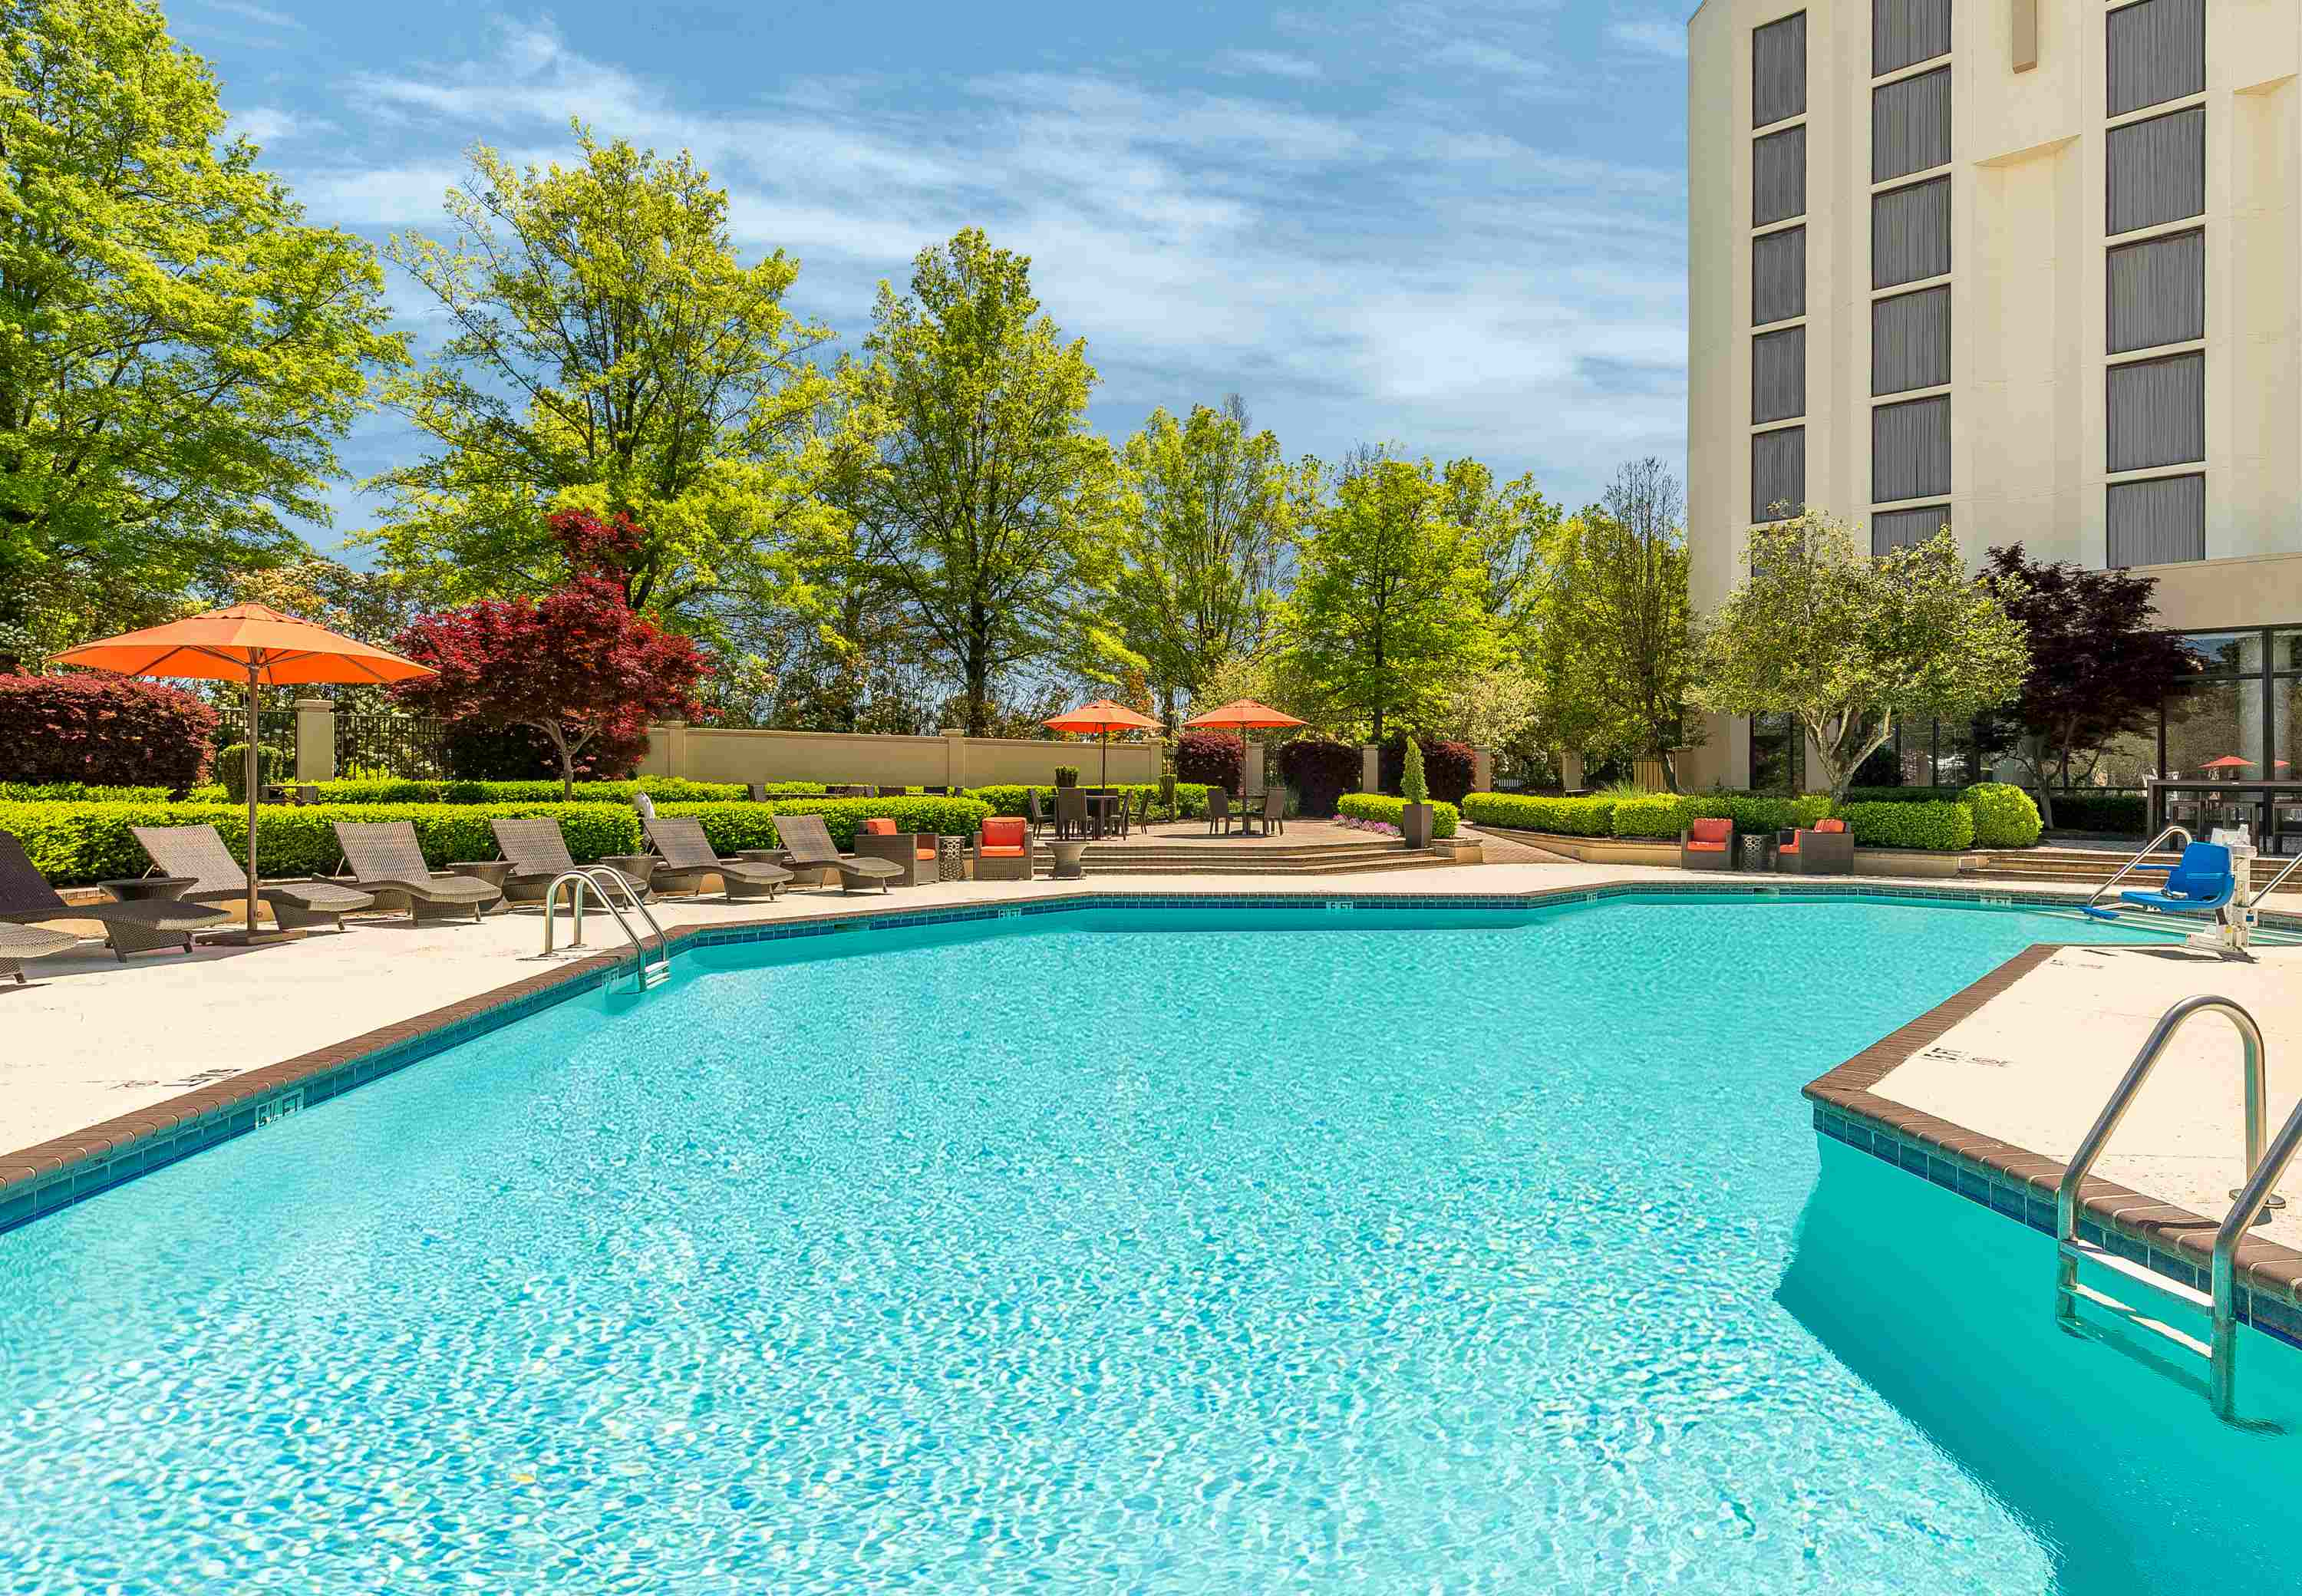 Greenville Marriott image 9